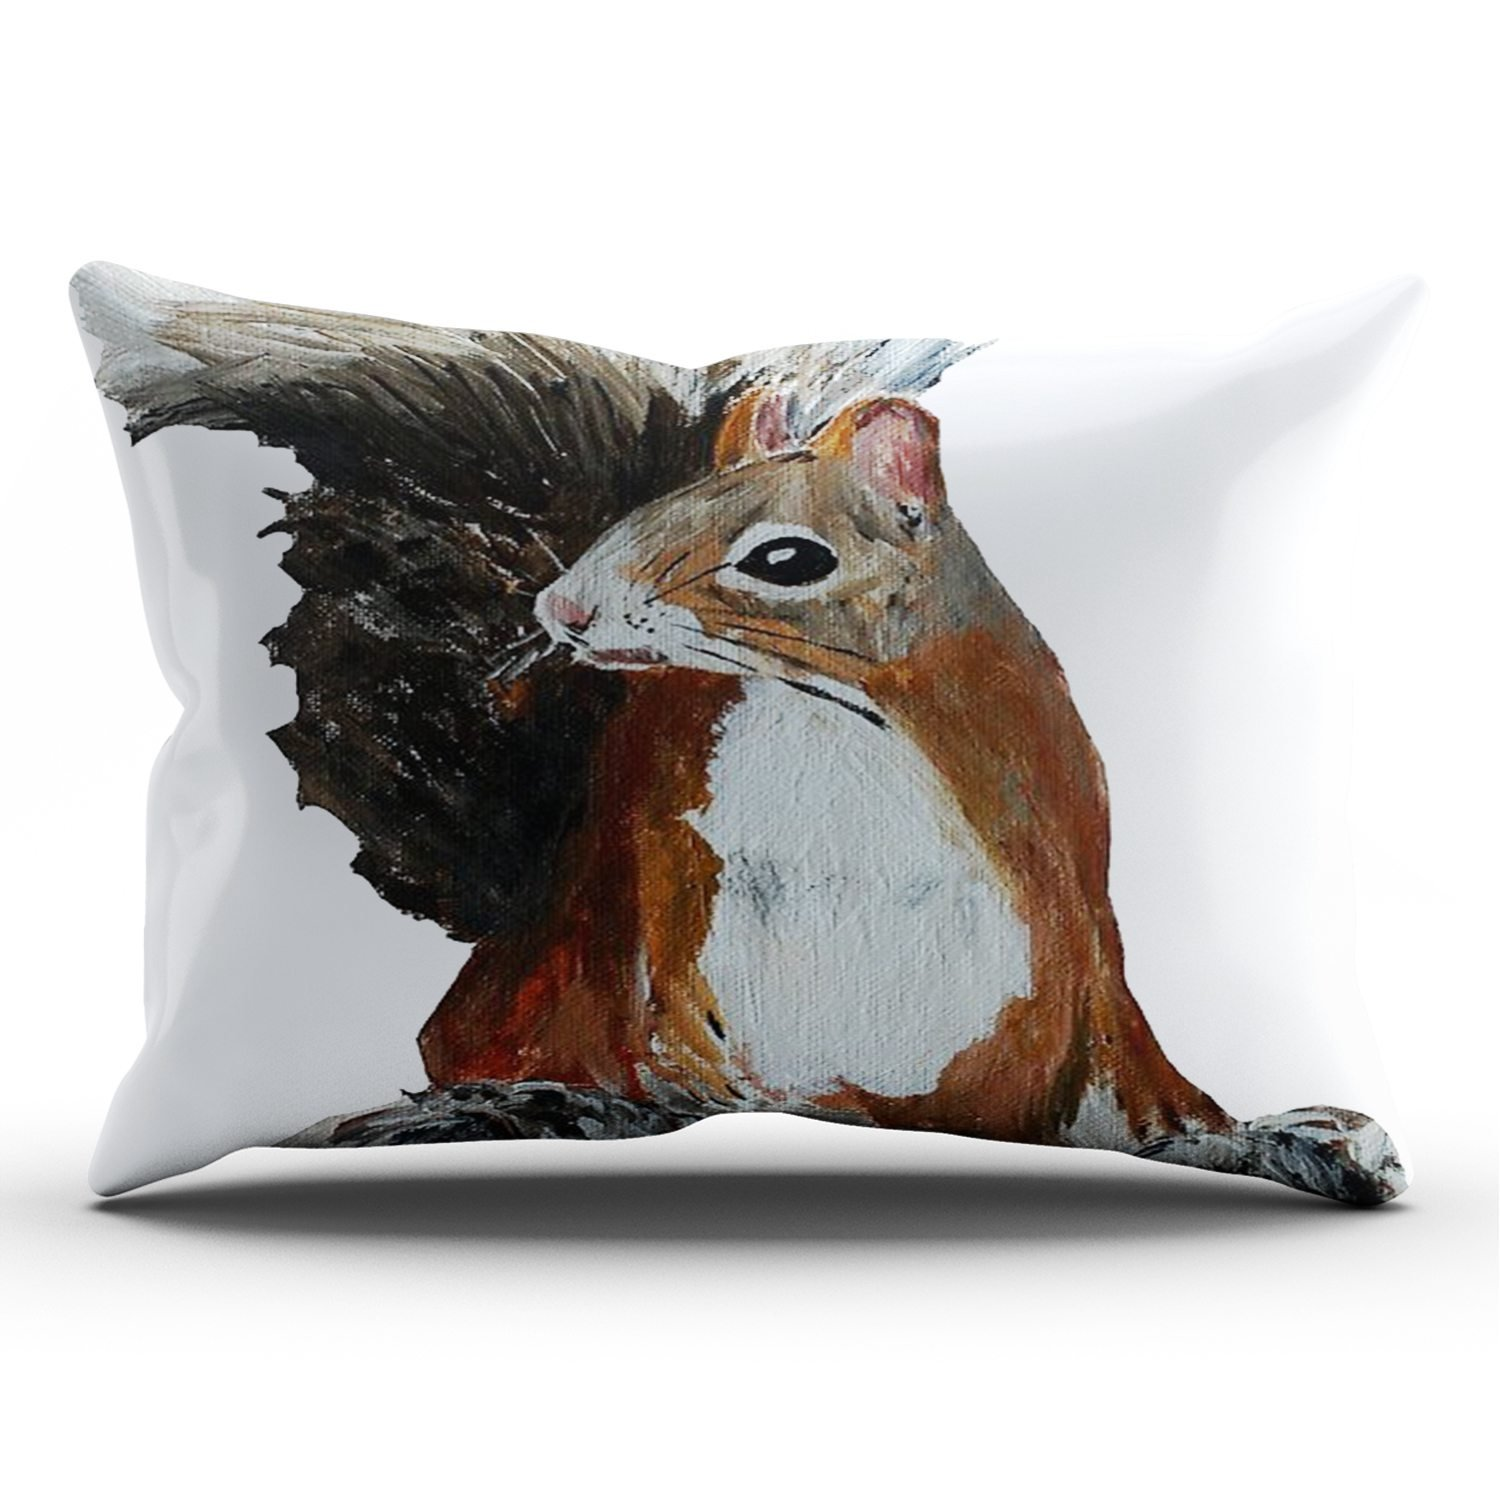 KEIBIKE Personalized Red Squirrel Woodland Animal Acrylic Painting Rectangle Decorative Pillowcases Print Zippered King Pillow Covers Cases 20x36 Inches One Sided